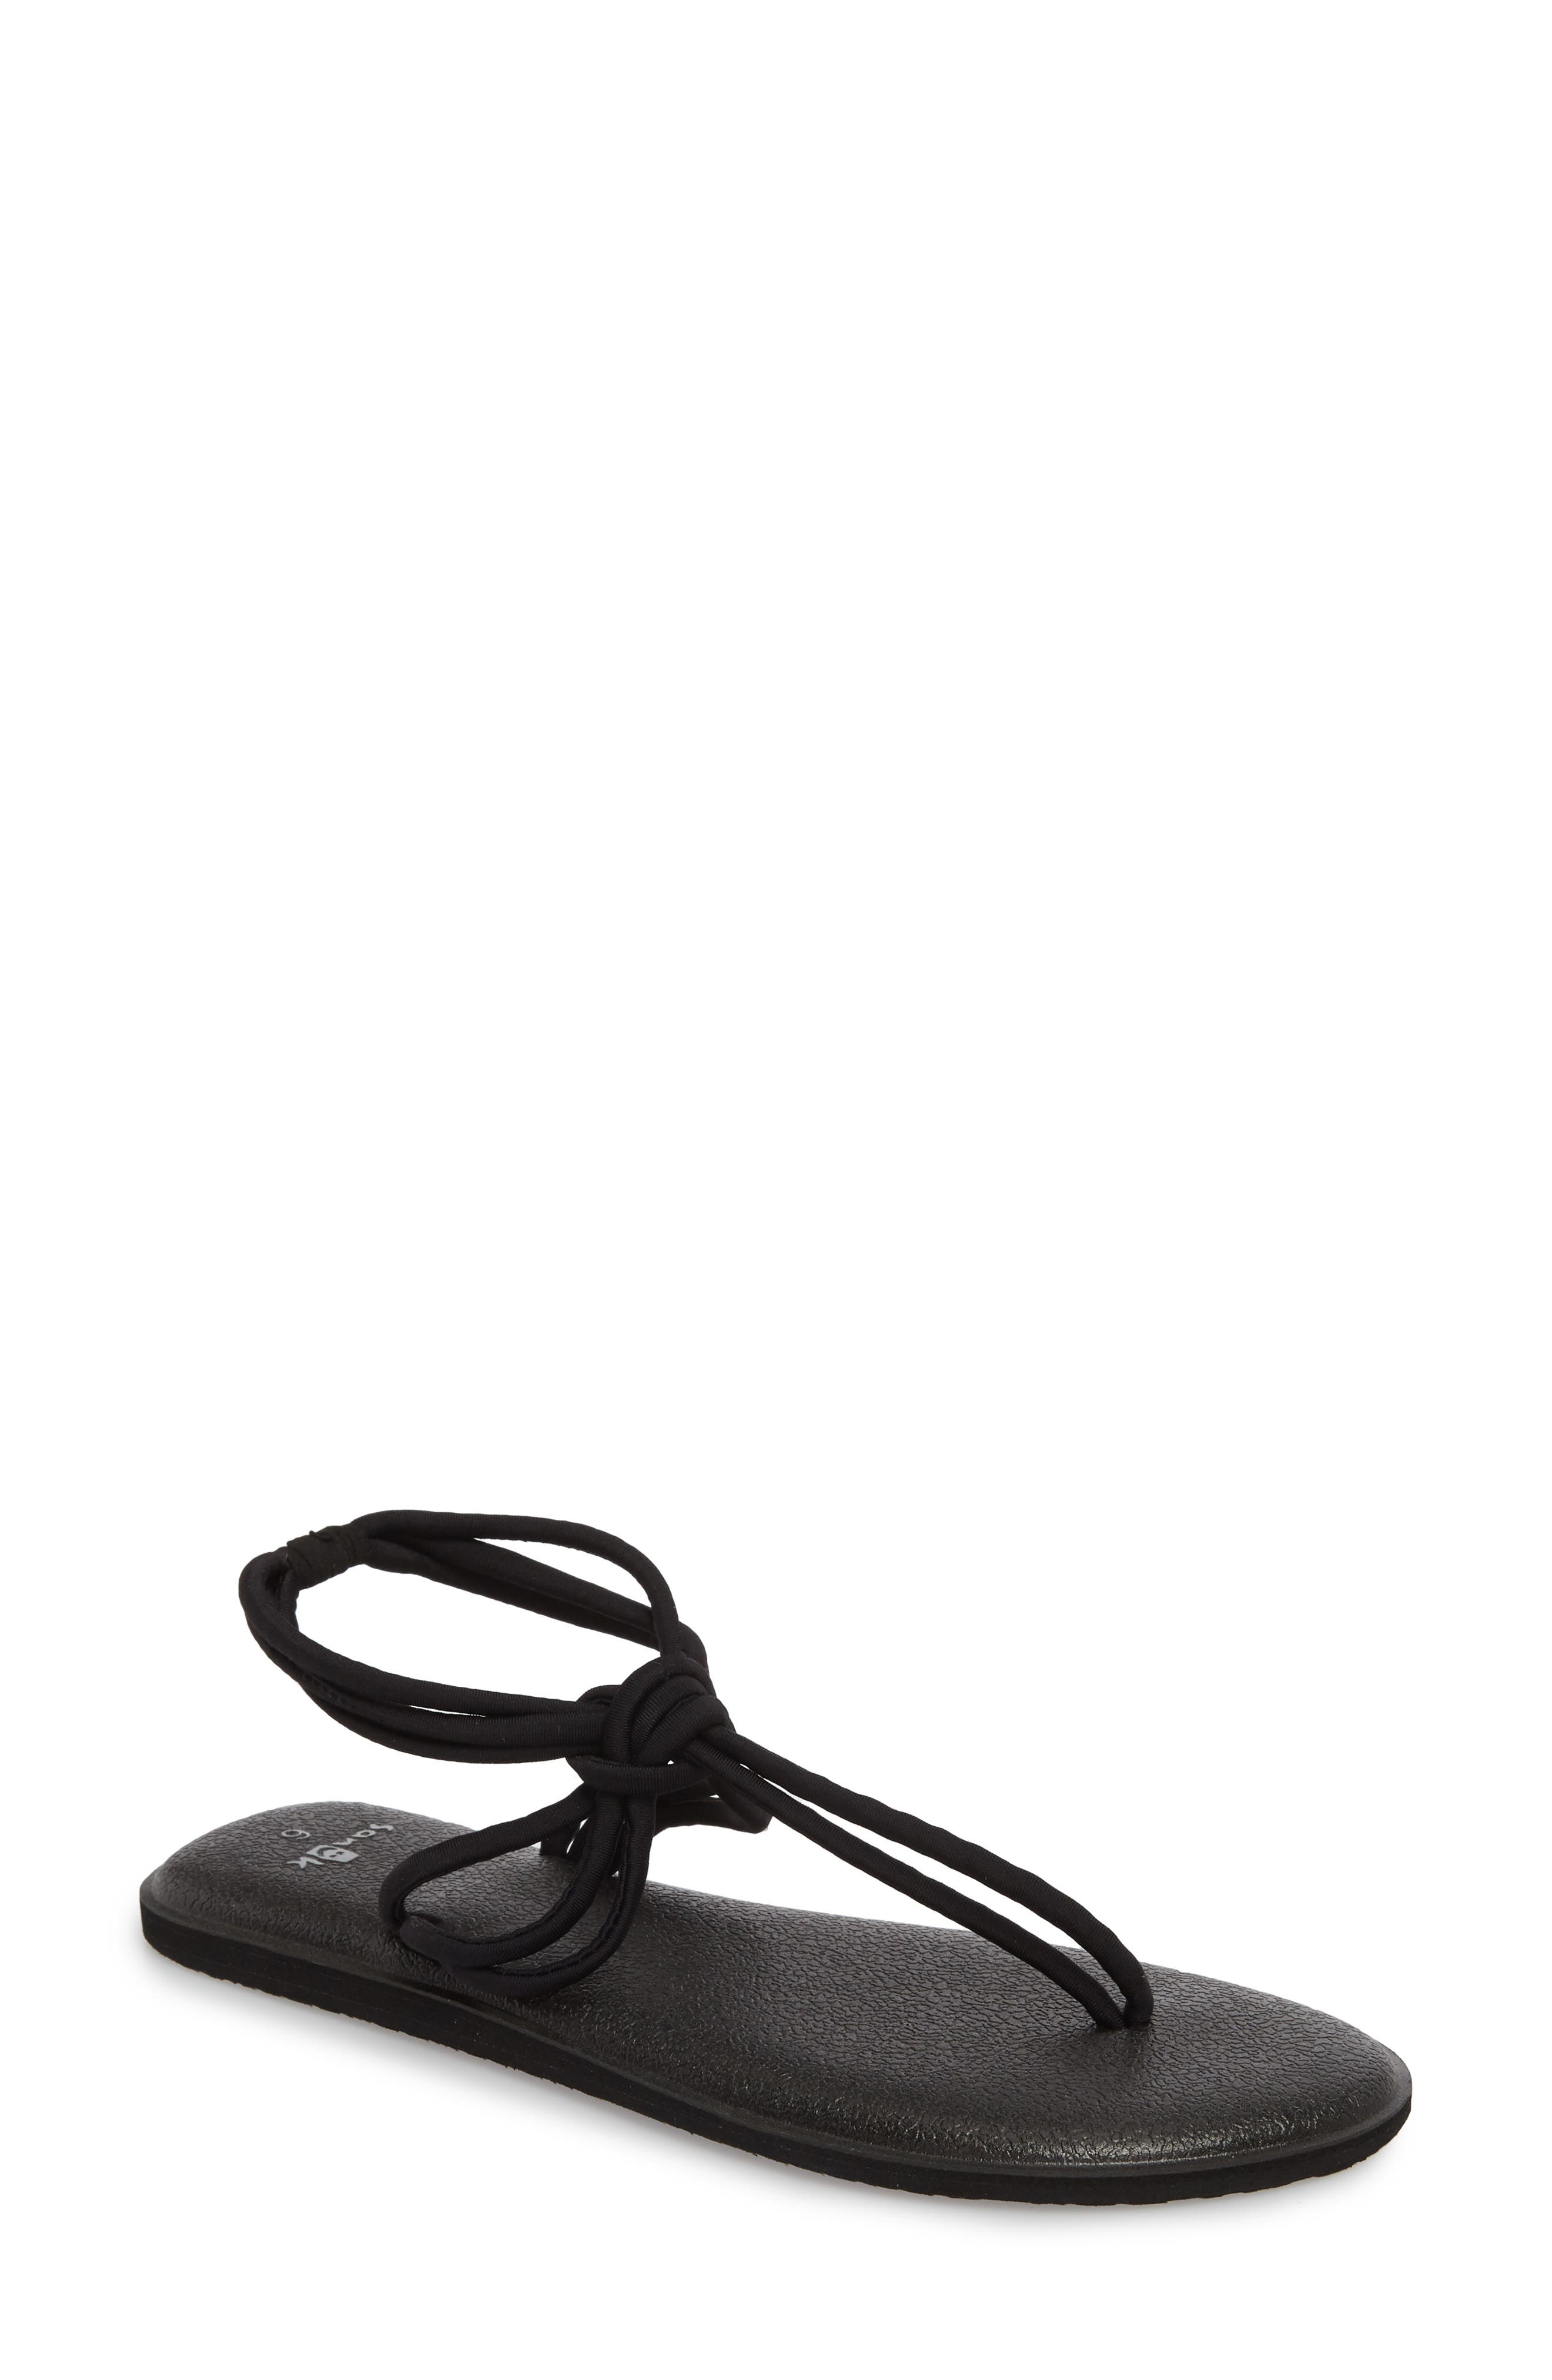 Yoga Sunshine Knotted Thong Sandal,                             Main thumbnail 1, color,                             Black